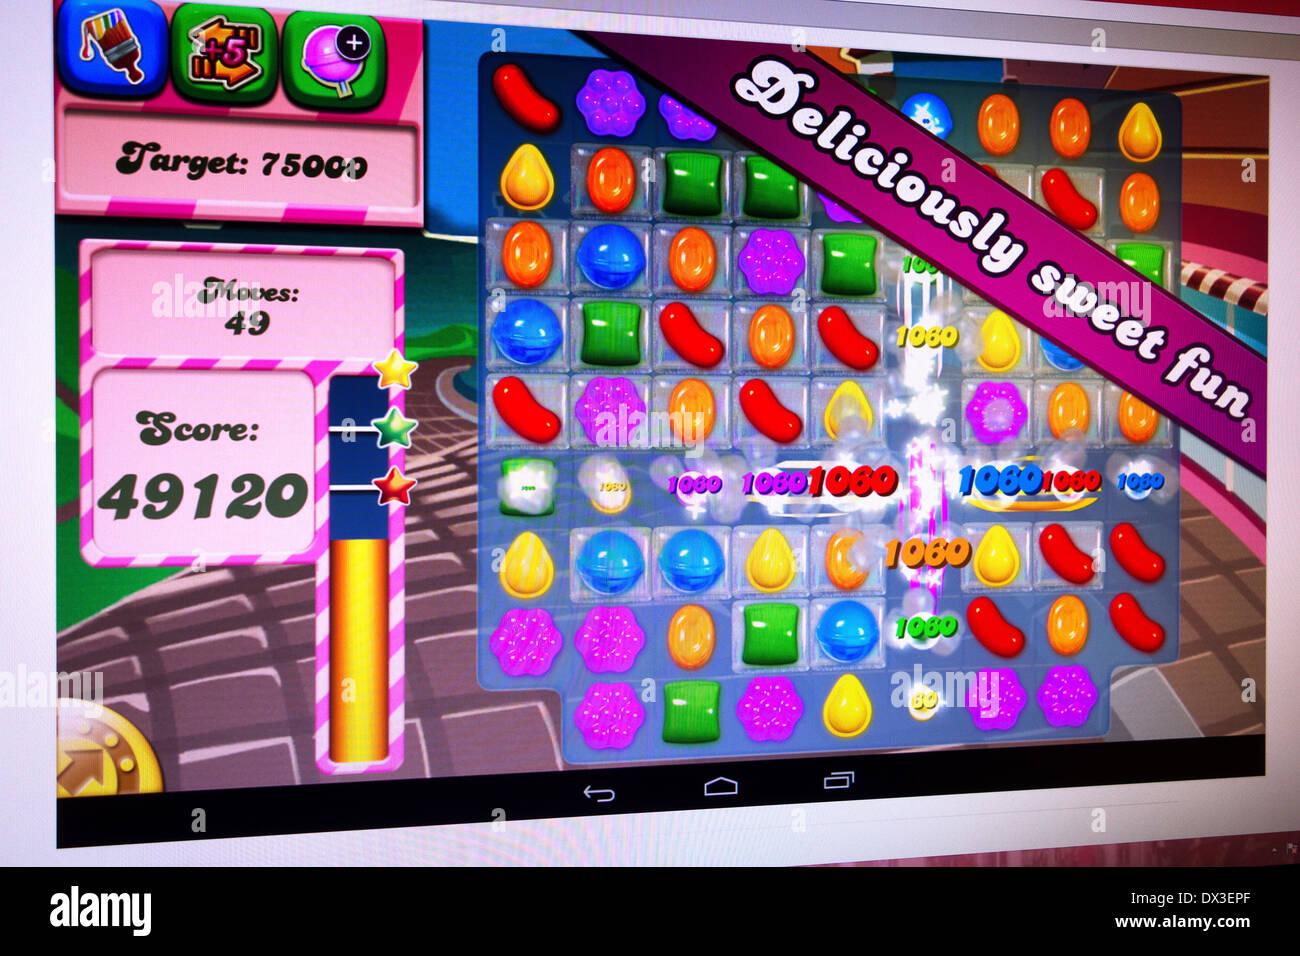 Candy Crush online entertainment Photo Stock